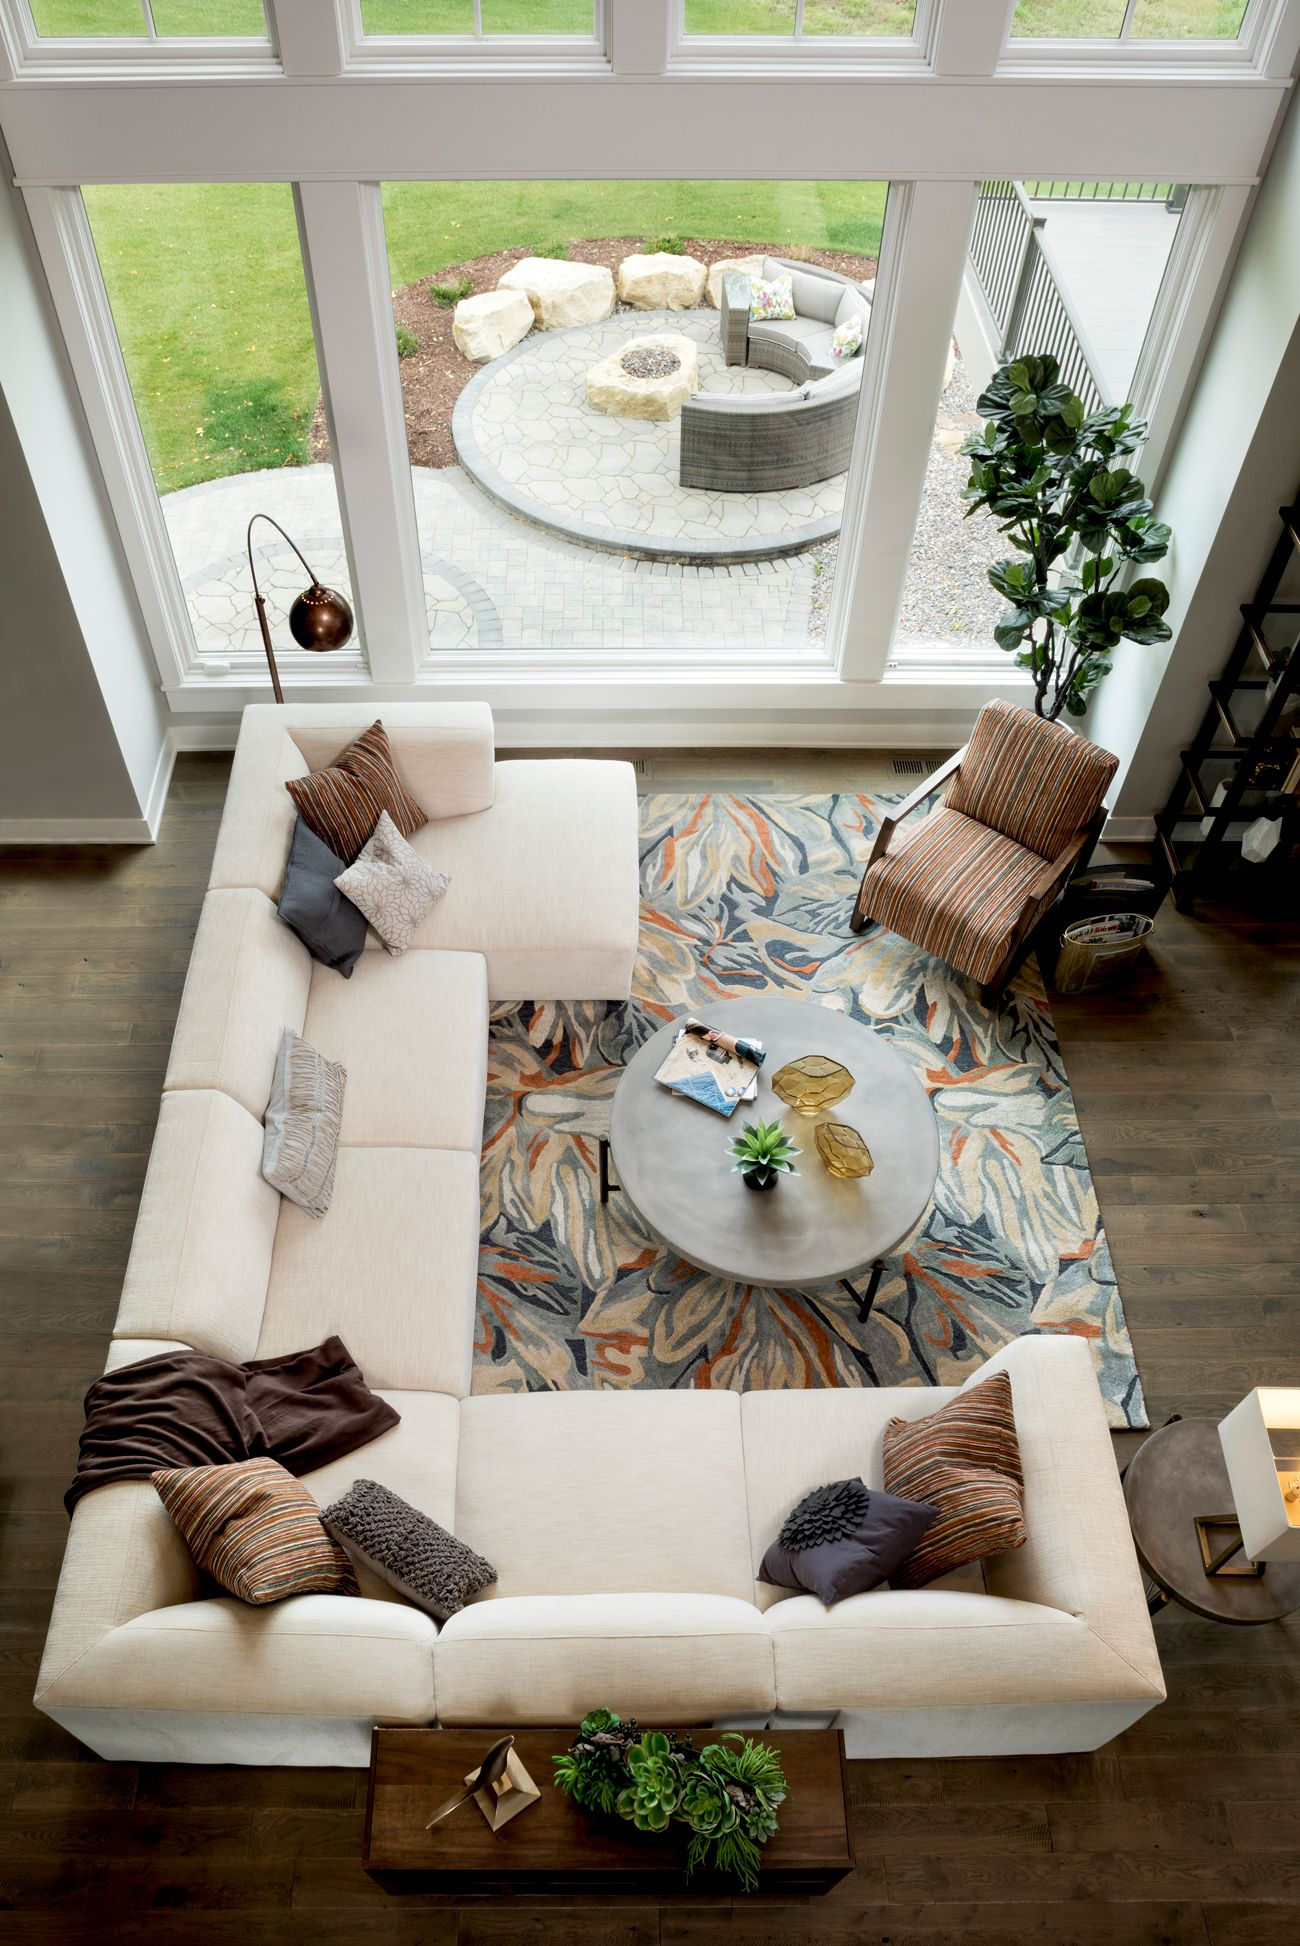 Finn 6 Piece Sectional Living room furniture layout